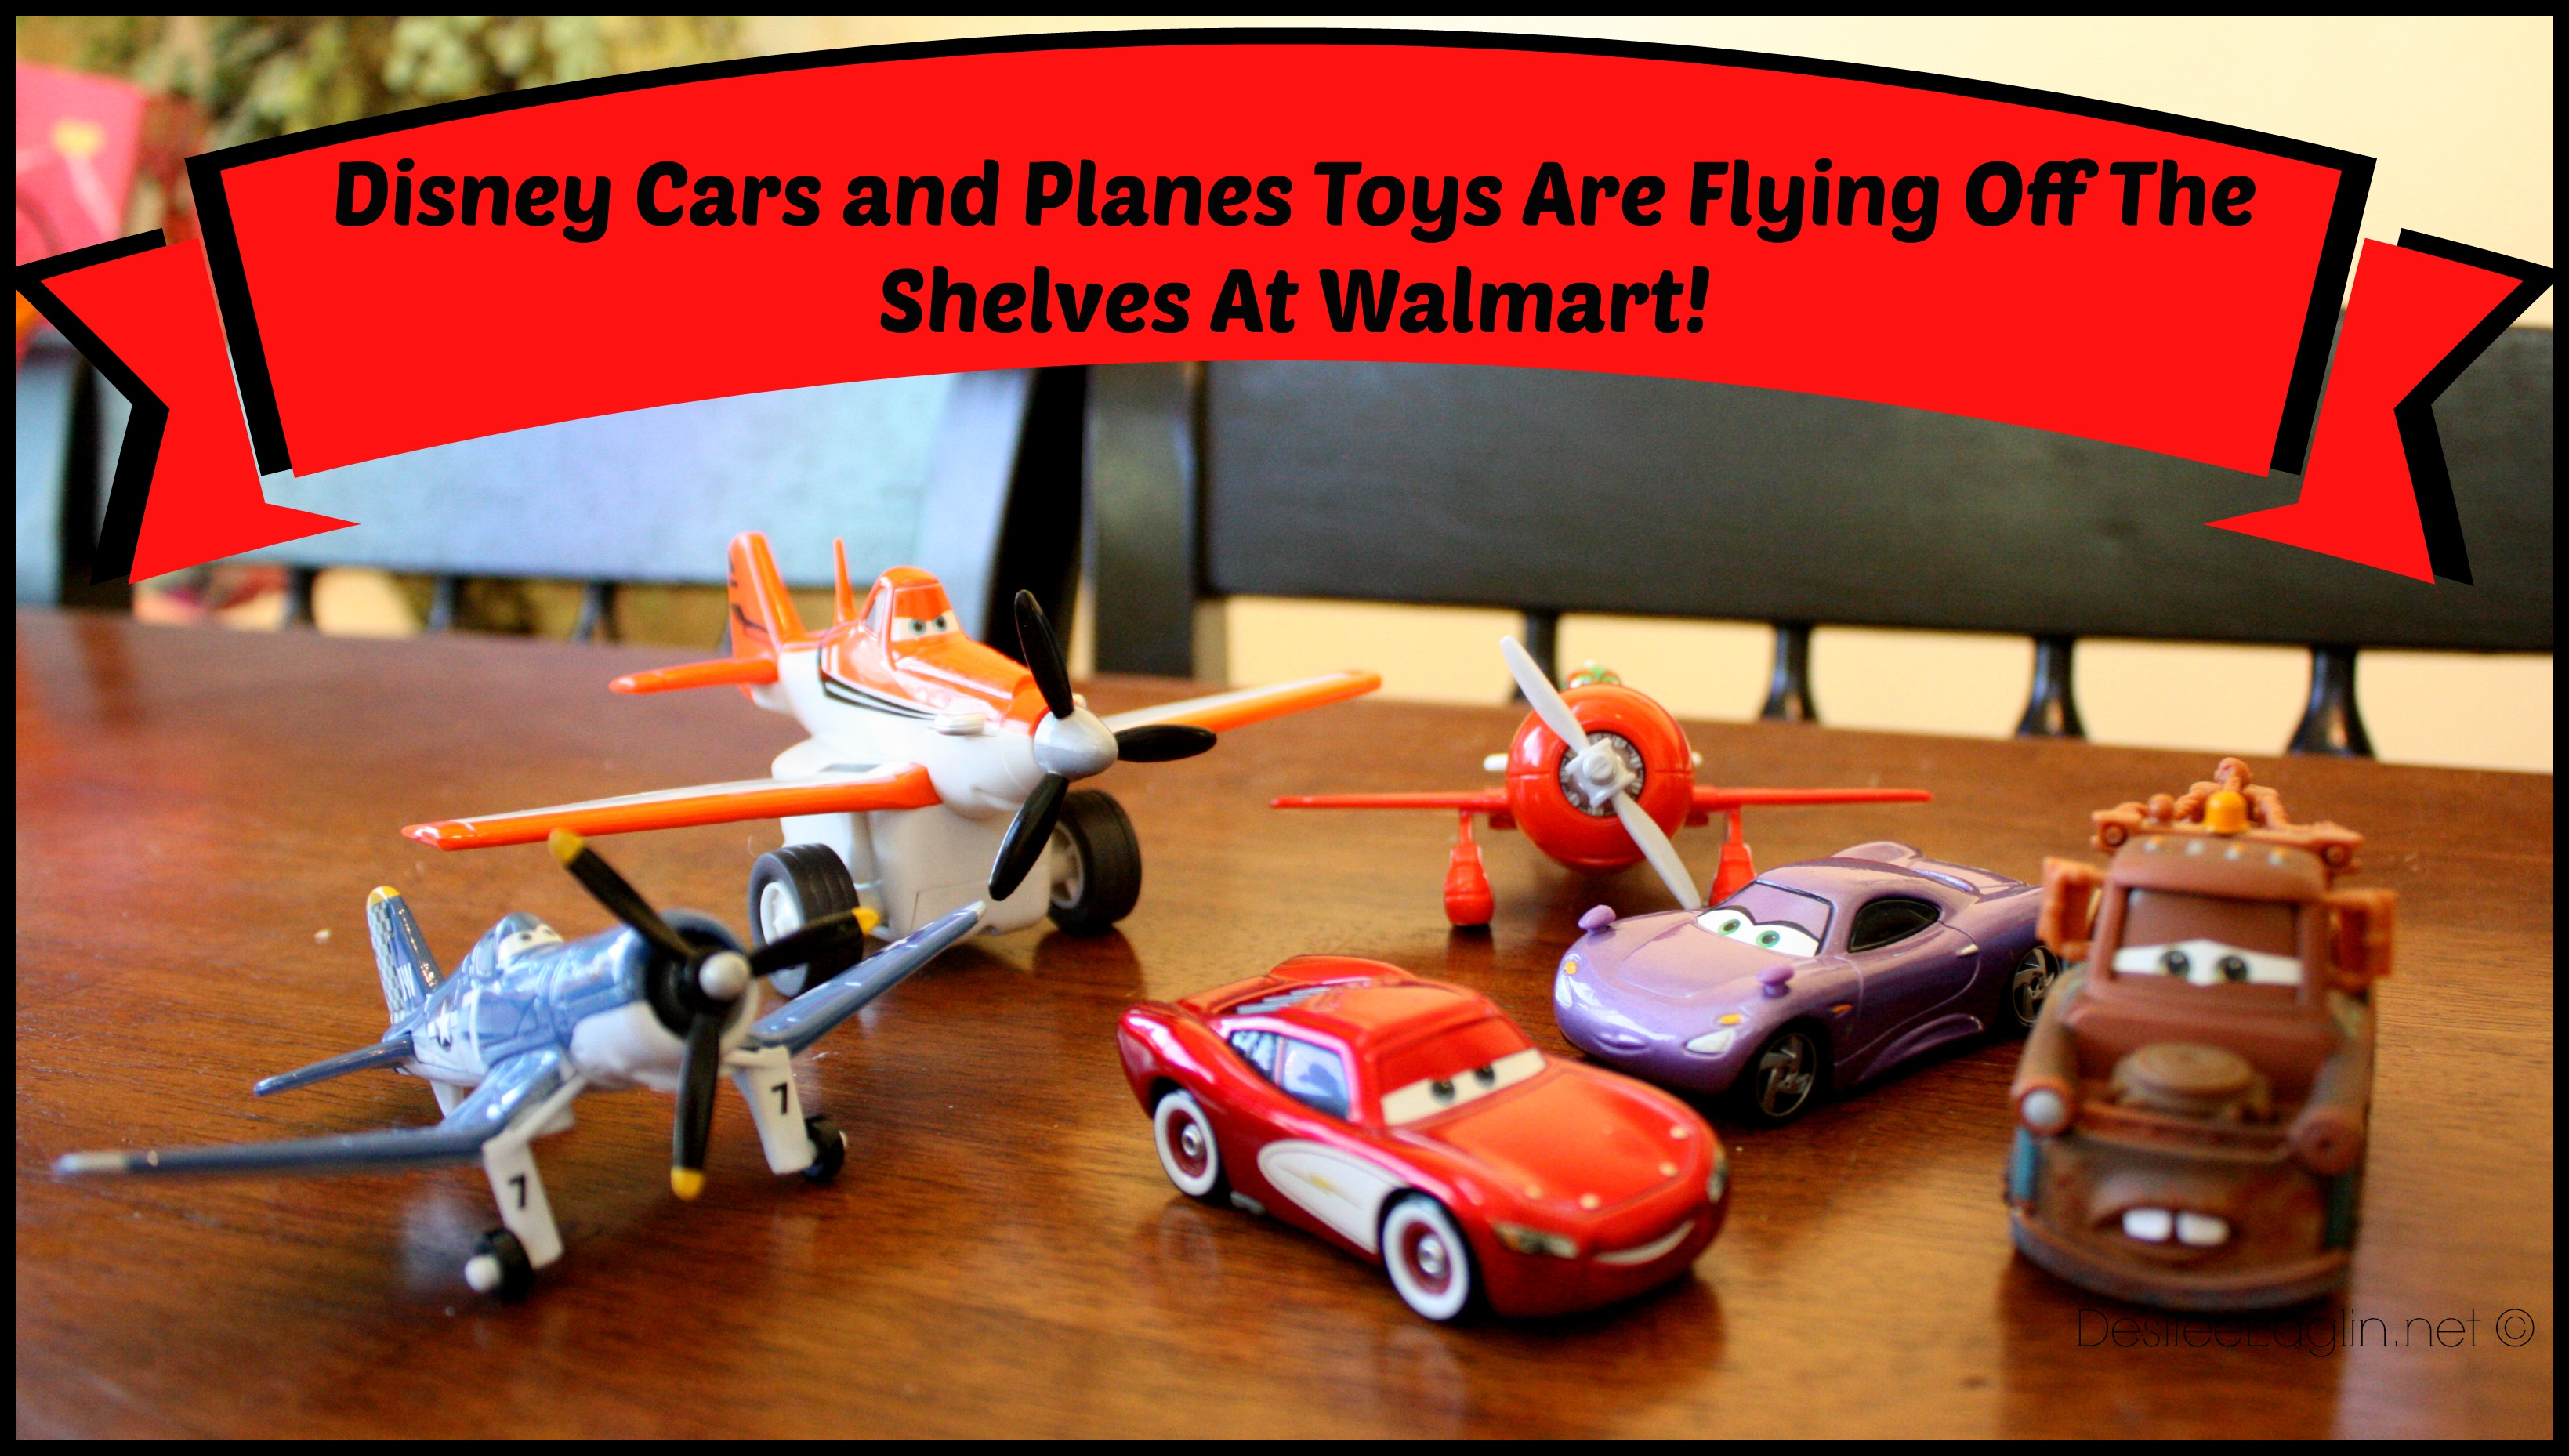 disney planes and disney cars toys at walmart